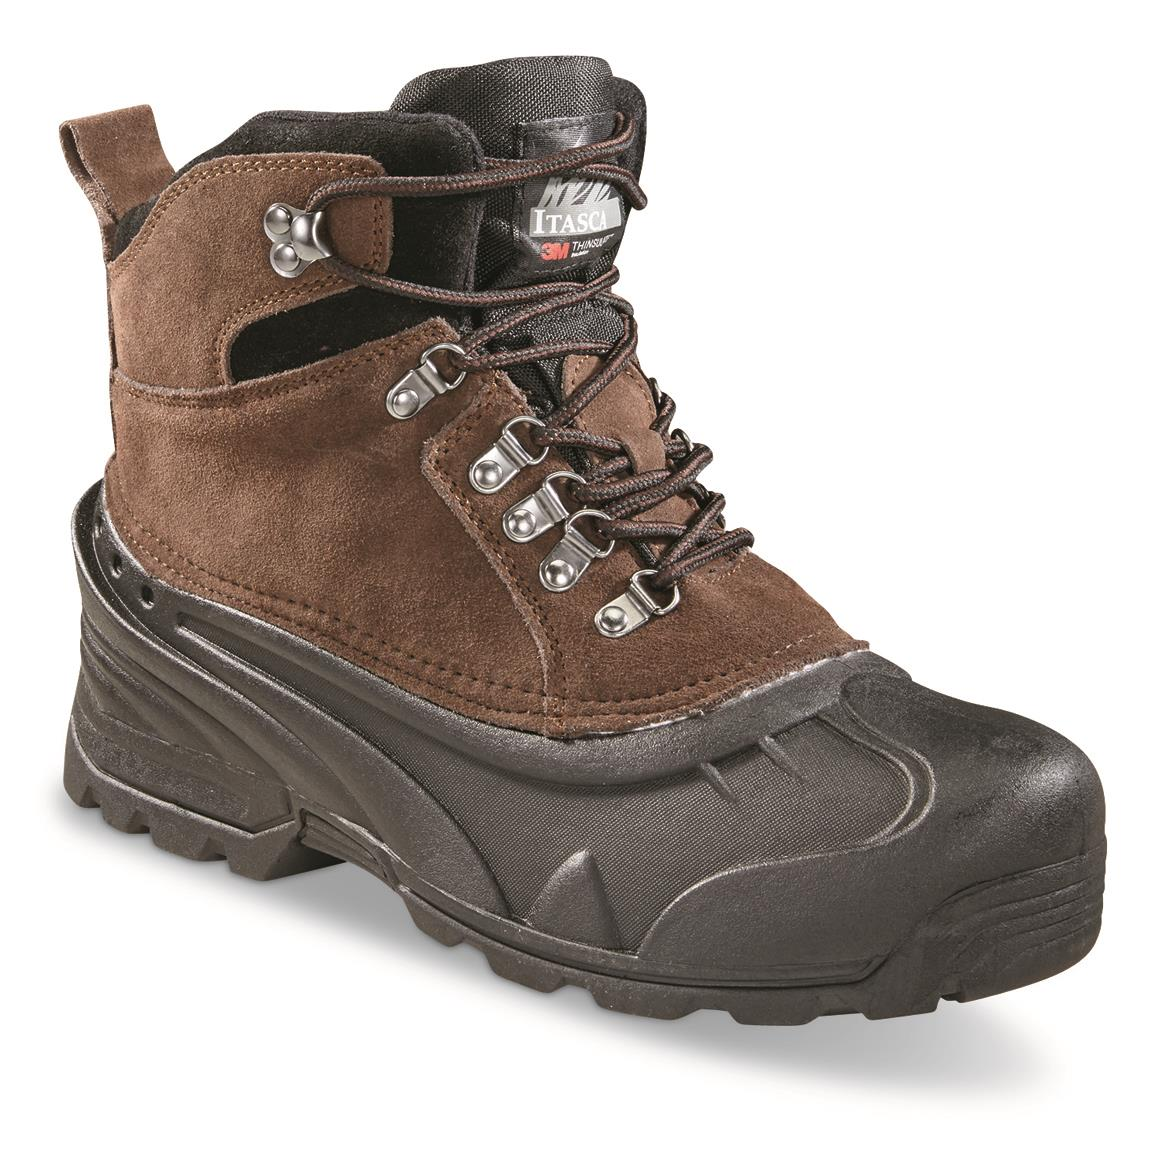 Itasca™ Ice Breaker Insulated Boots, Brown